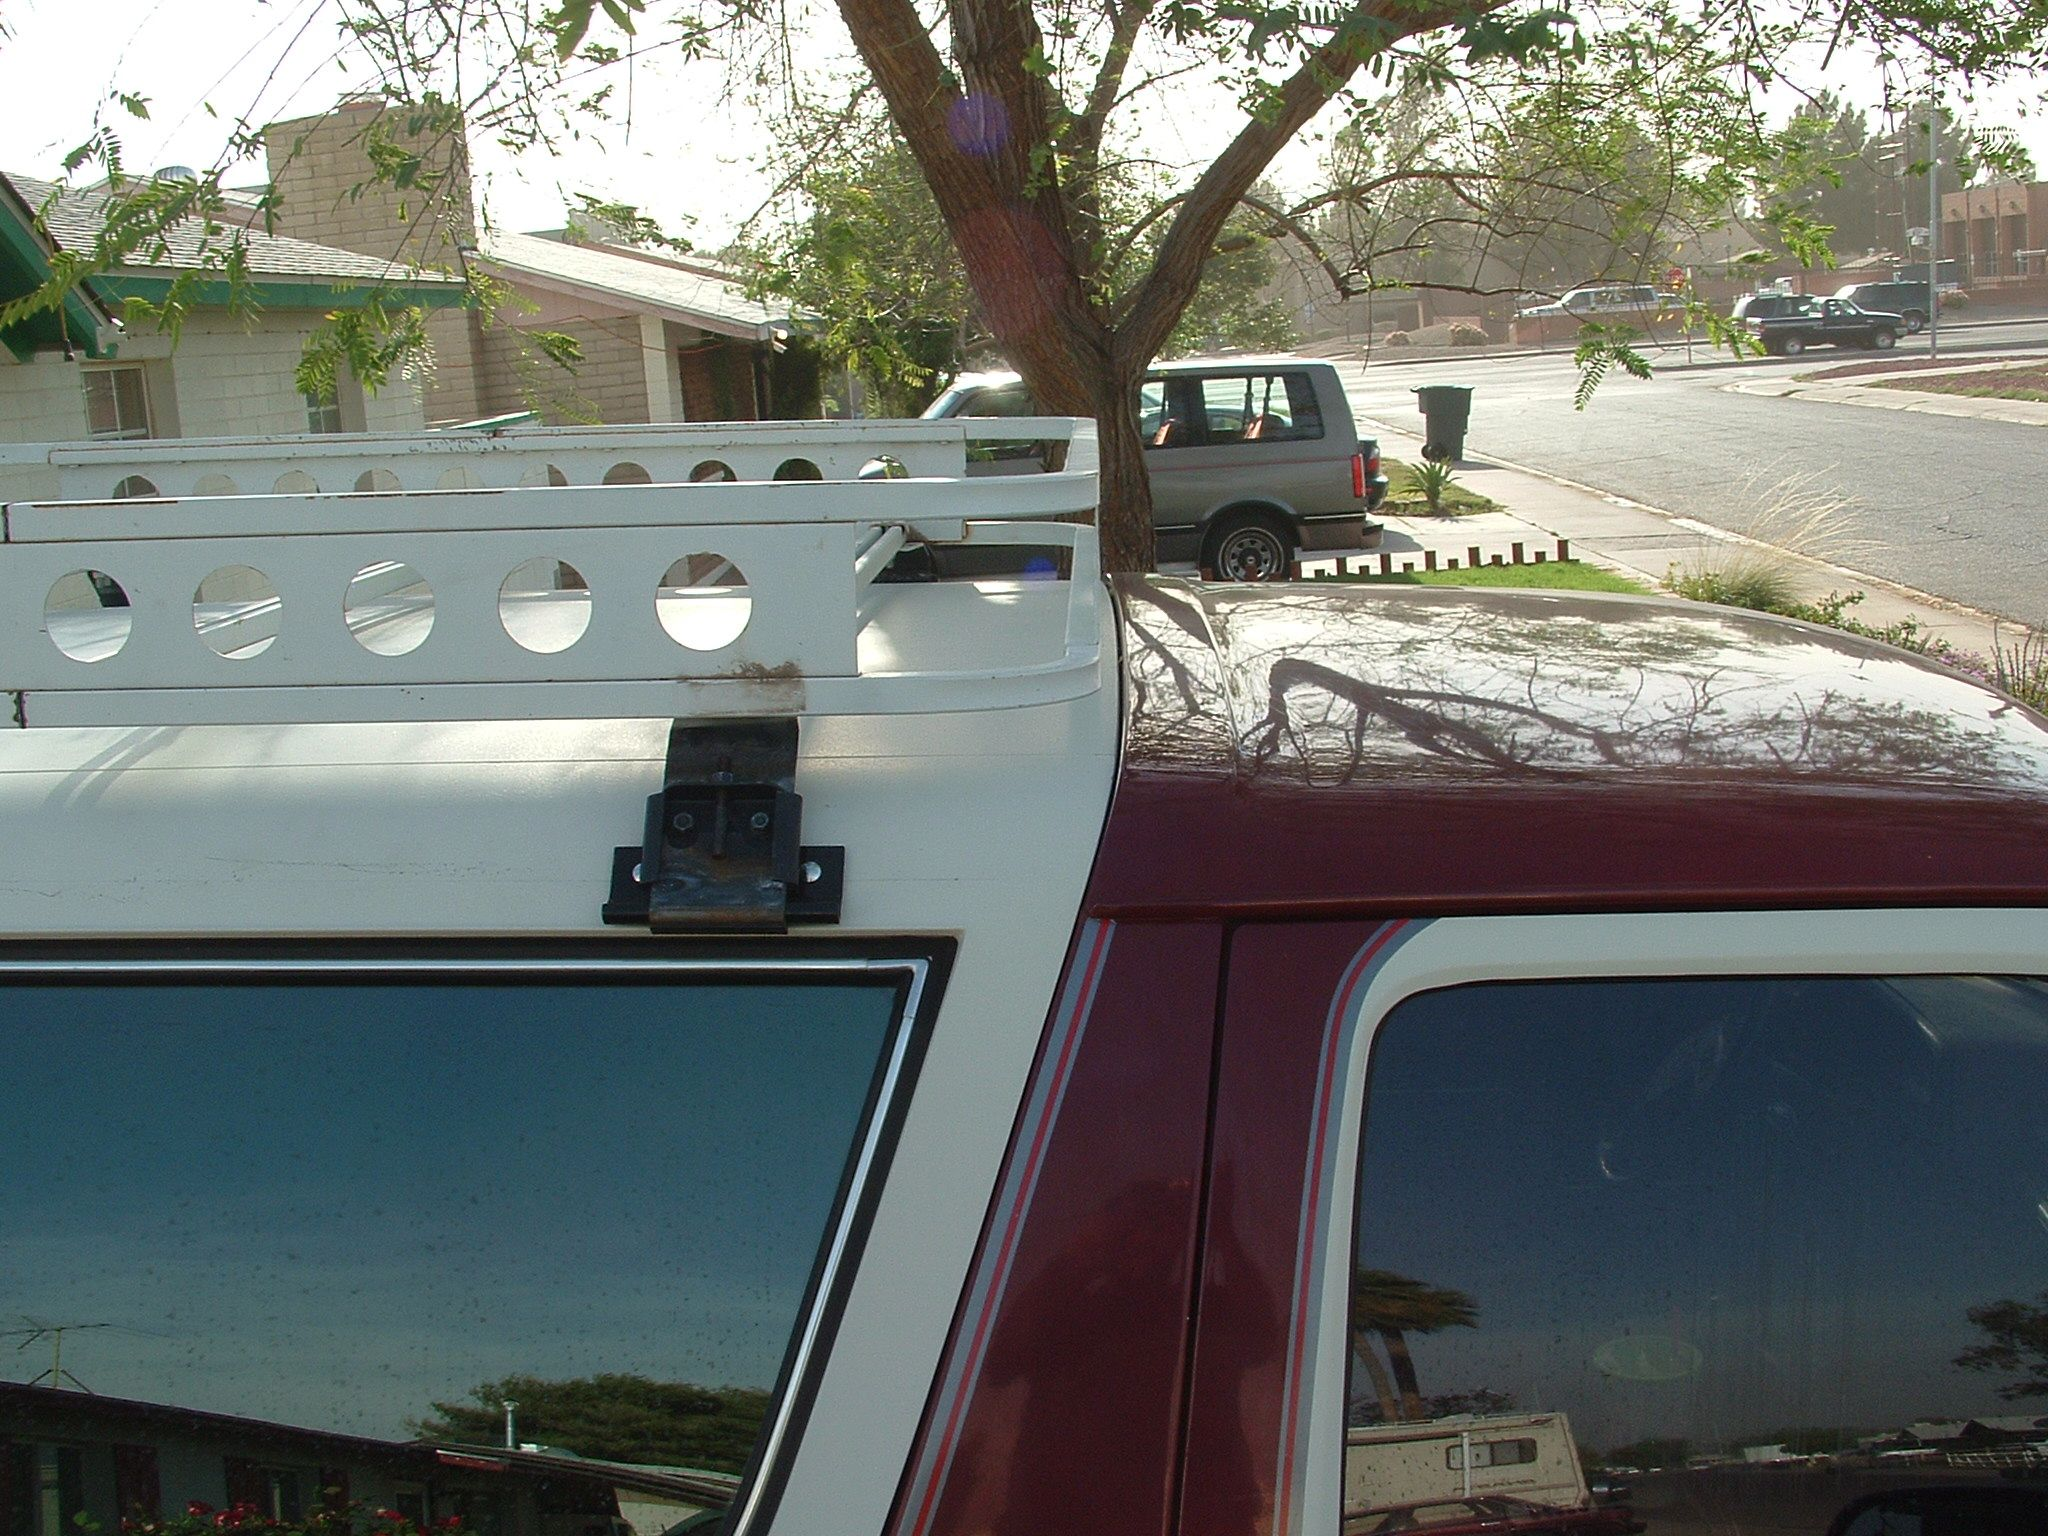 1990 Ford Bronco Roof Rack Picture Supermotors Net Bronco Ford Bronco Roof Rack